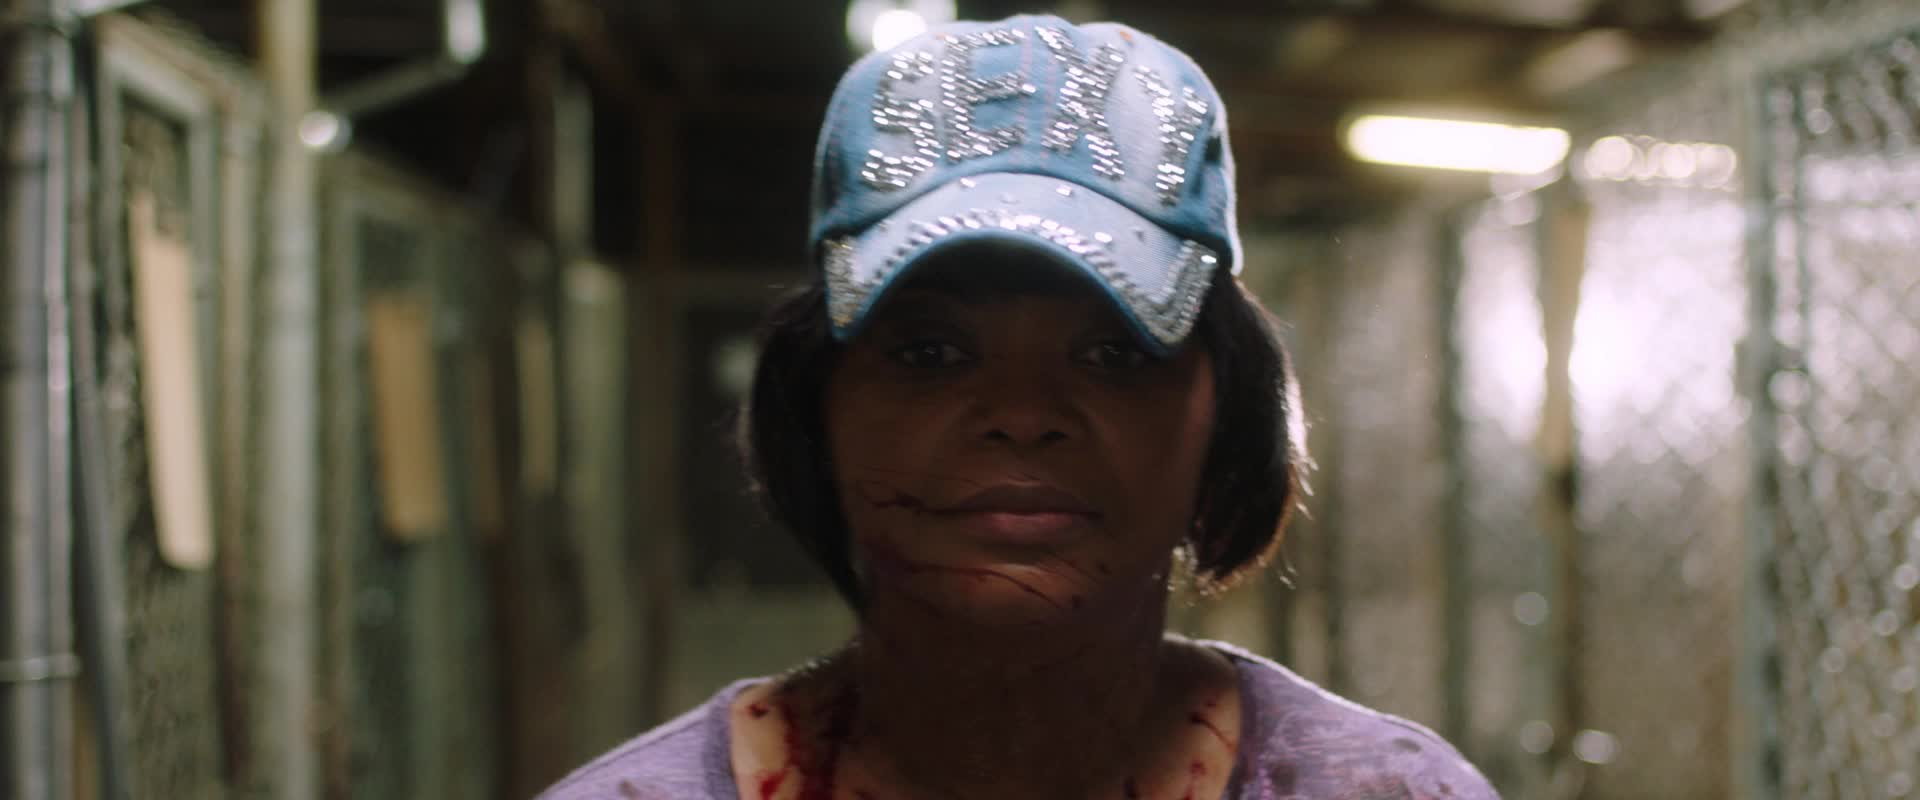 creepy, ma, ma movie, octavia spencer, MA Creepy Octavia Spencer GIFs